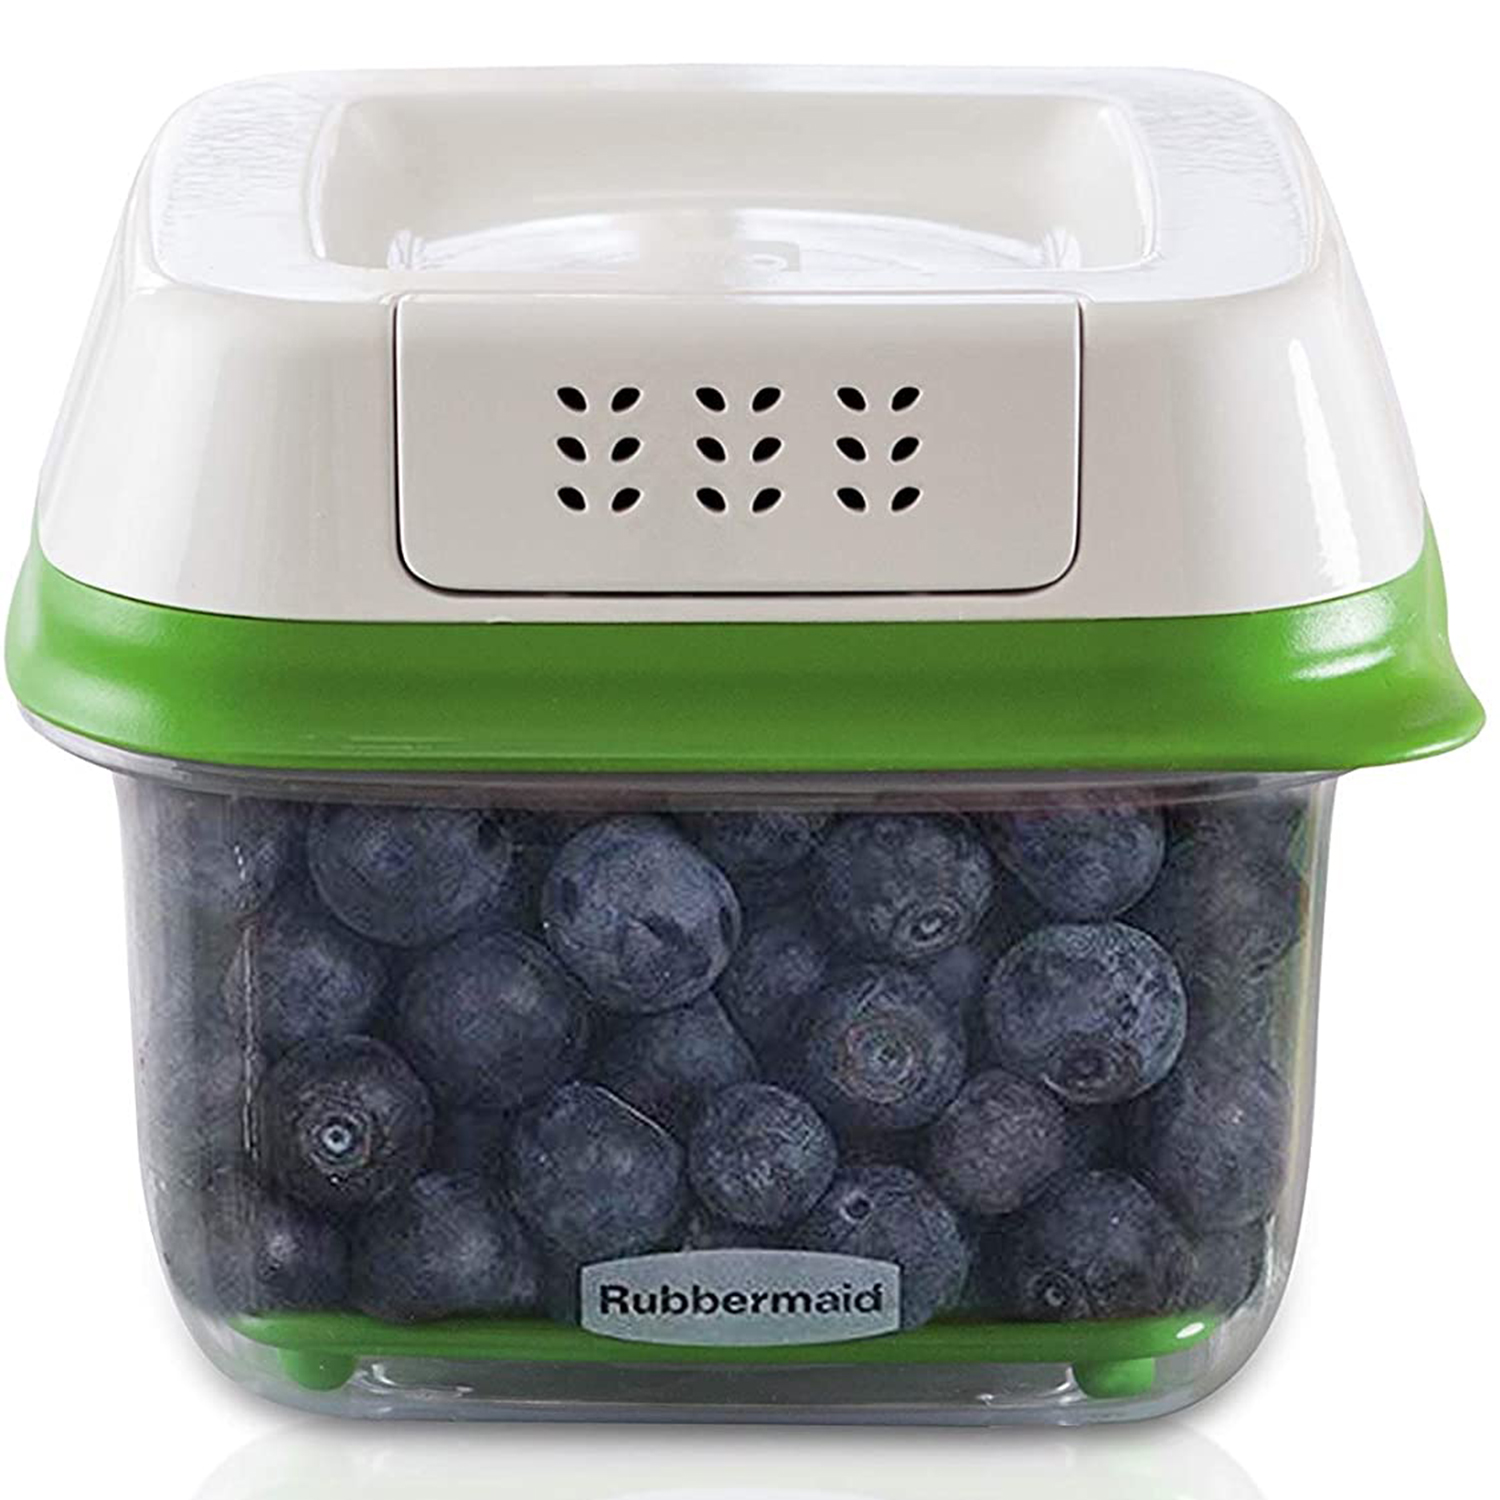 Rubbermaid FreshWorks Produce Saver Food Storage Container, Small